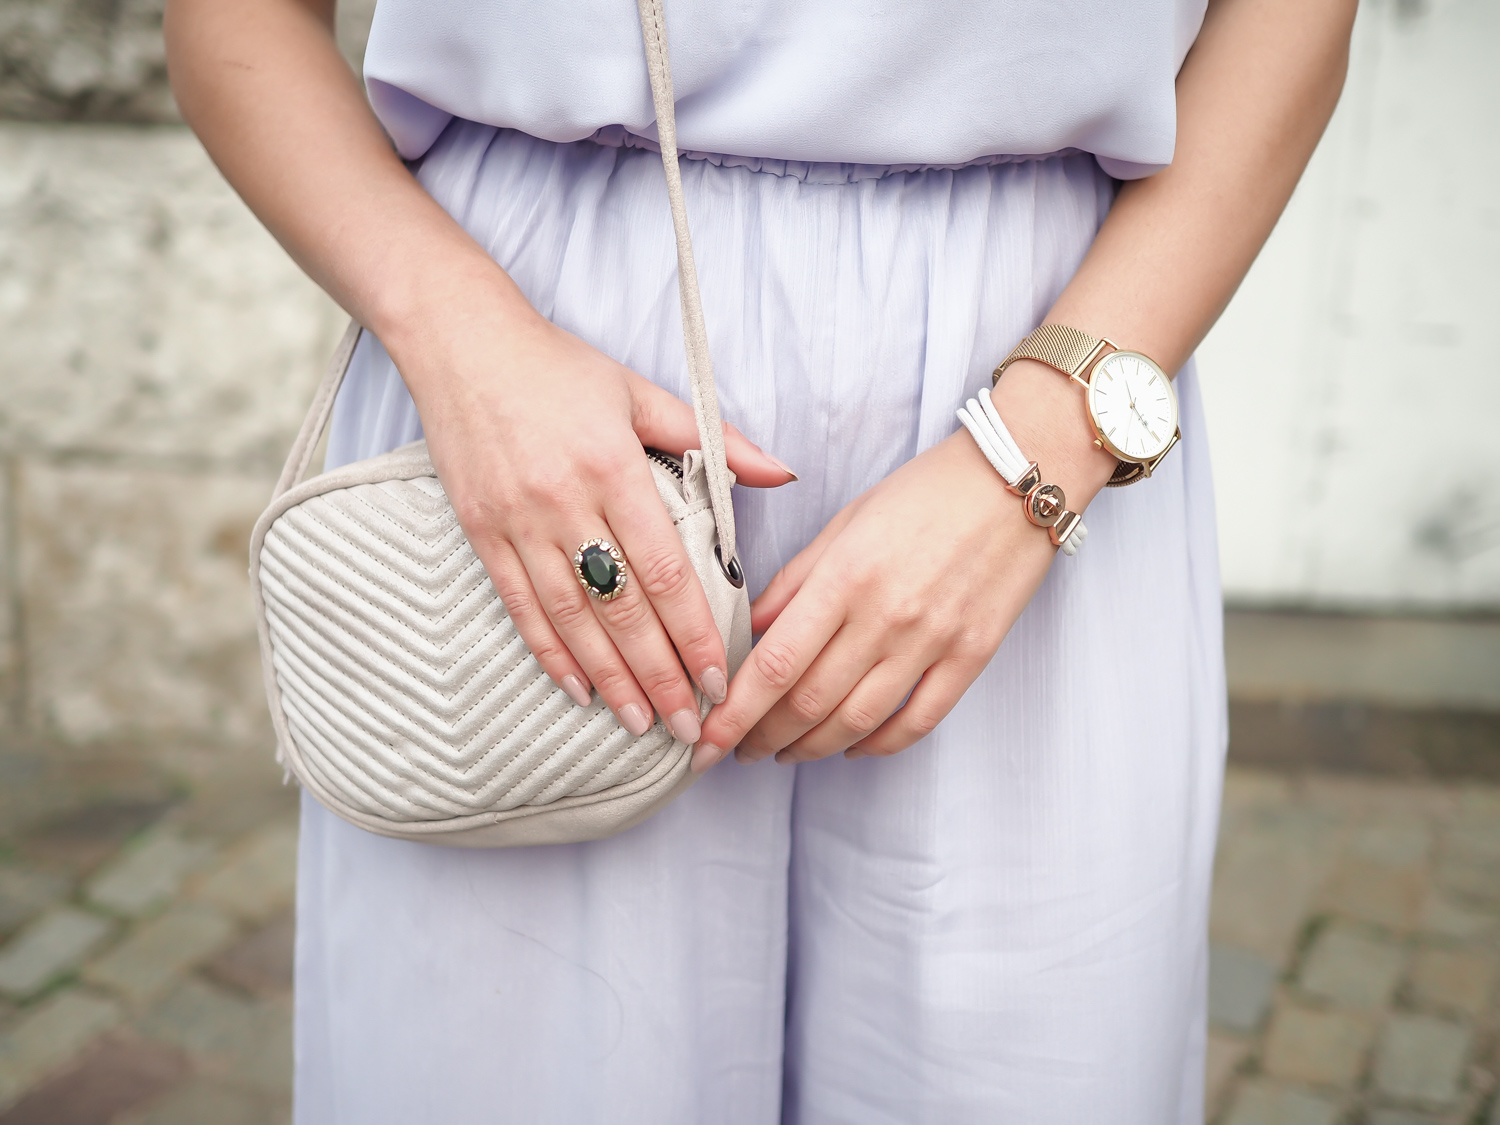 wpid-lilac-palazzo-pants-mango-strappy-top-hm-overall-wide-legs-trenchcoat-eleganz-night-out-big-earring-samieze-berlin-fashionblog-chic-streetstyle-summer-gala-event-8.jpg.jpeg